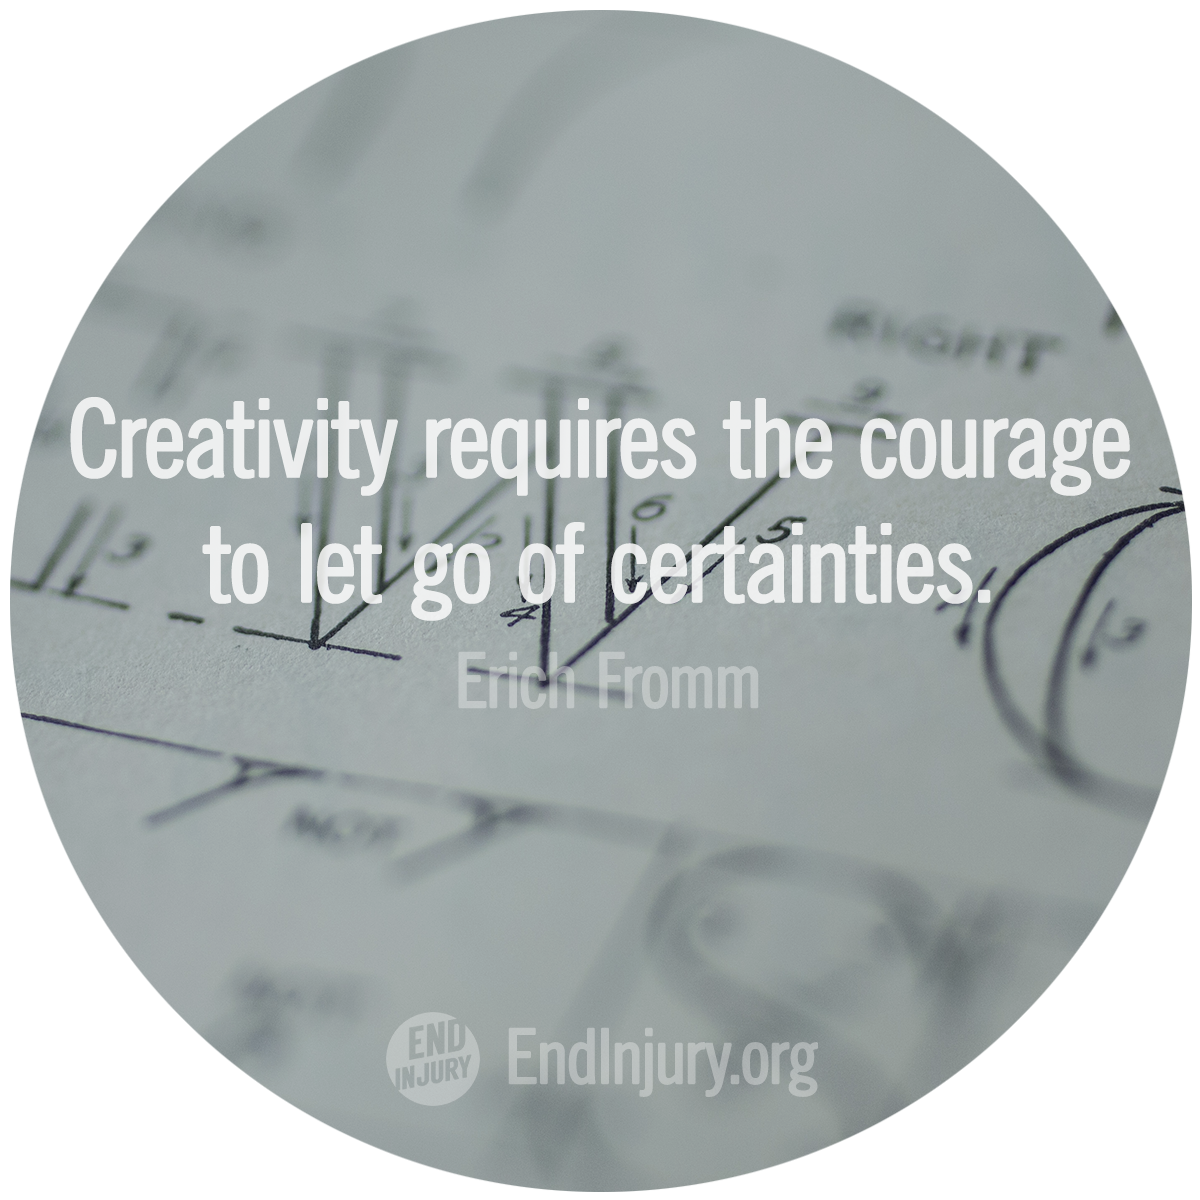 Creativity-courage-erich-fromm-quote.png